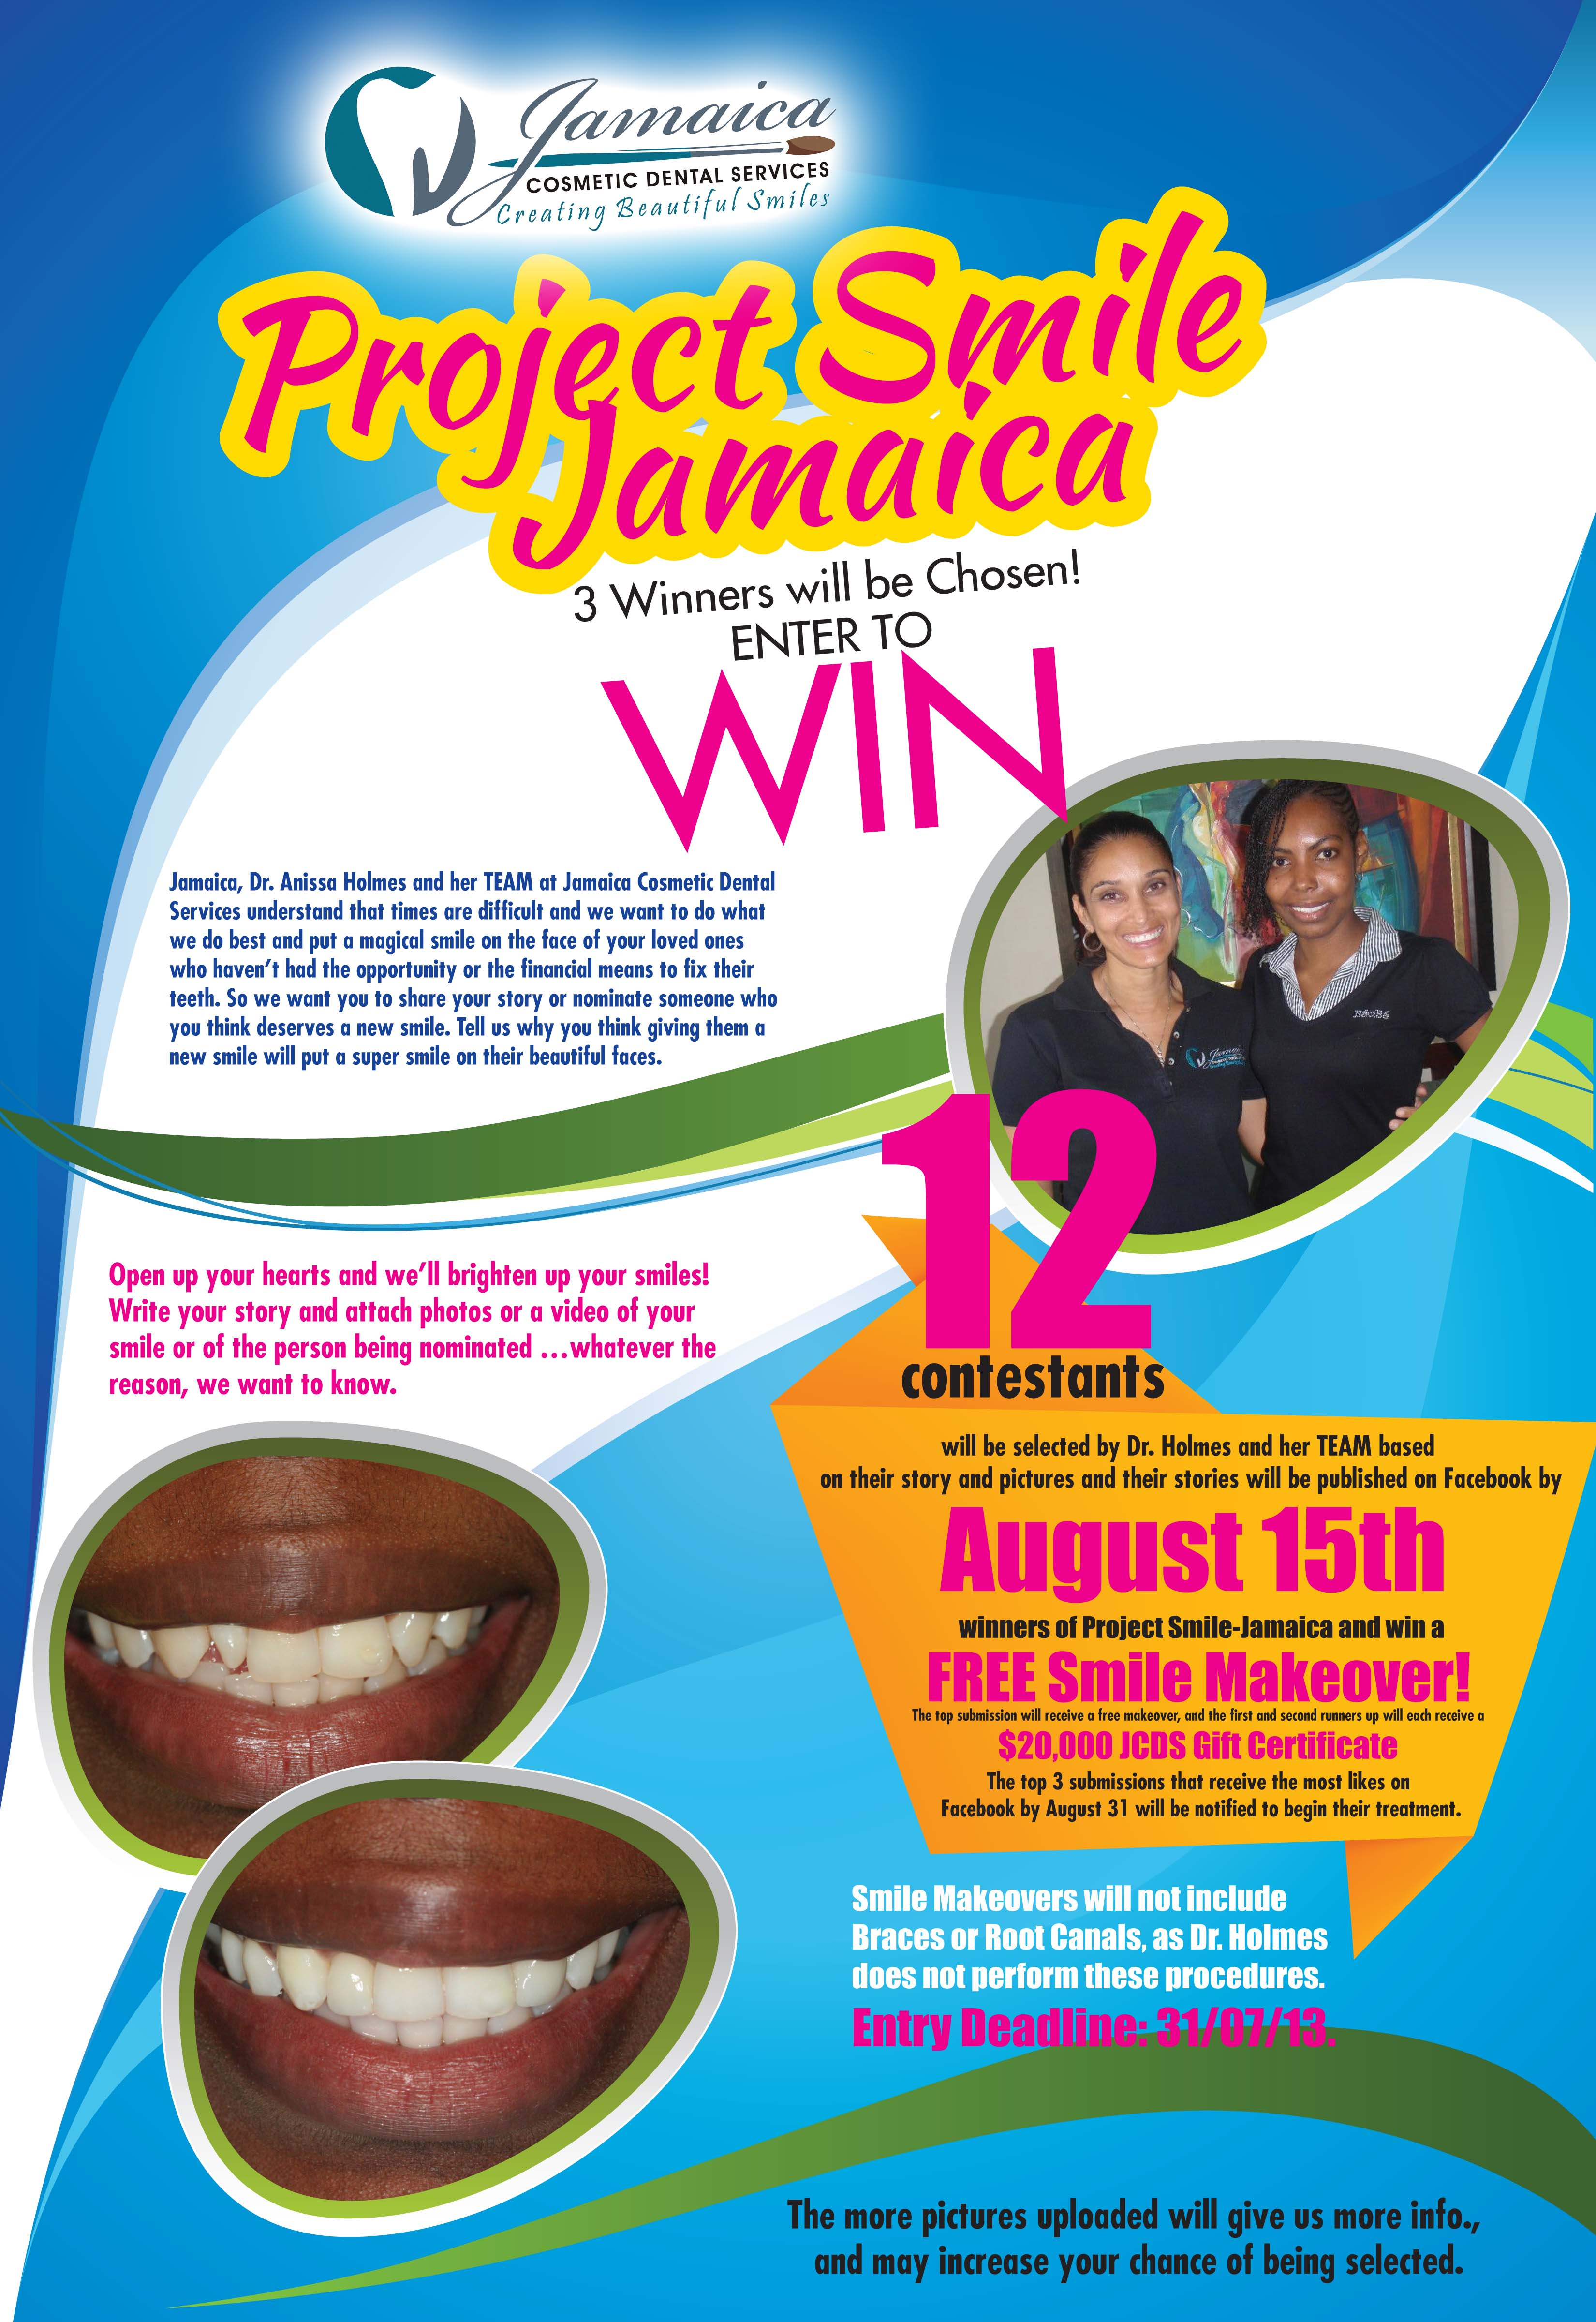 Enter to WIN a Free Smile Makeover! | Jamaica Cosmetic Dental Services